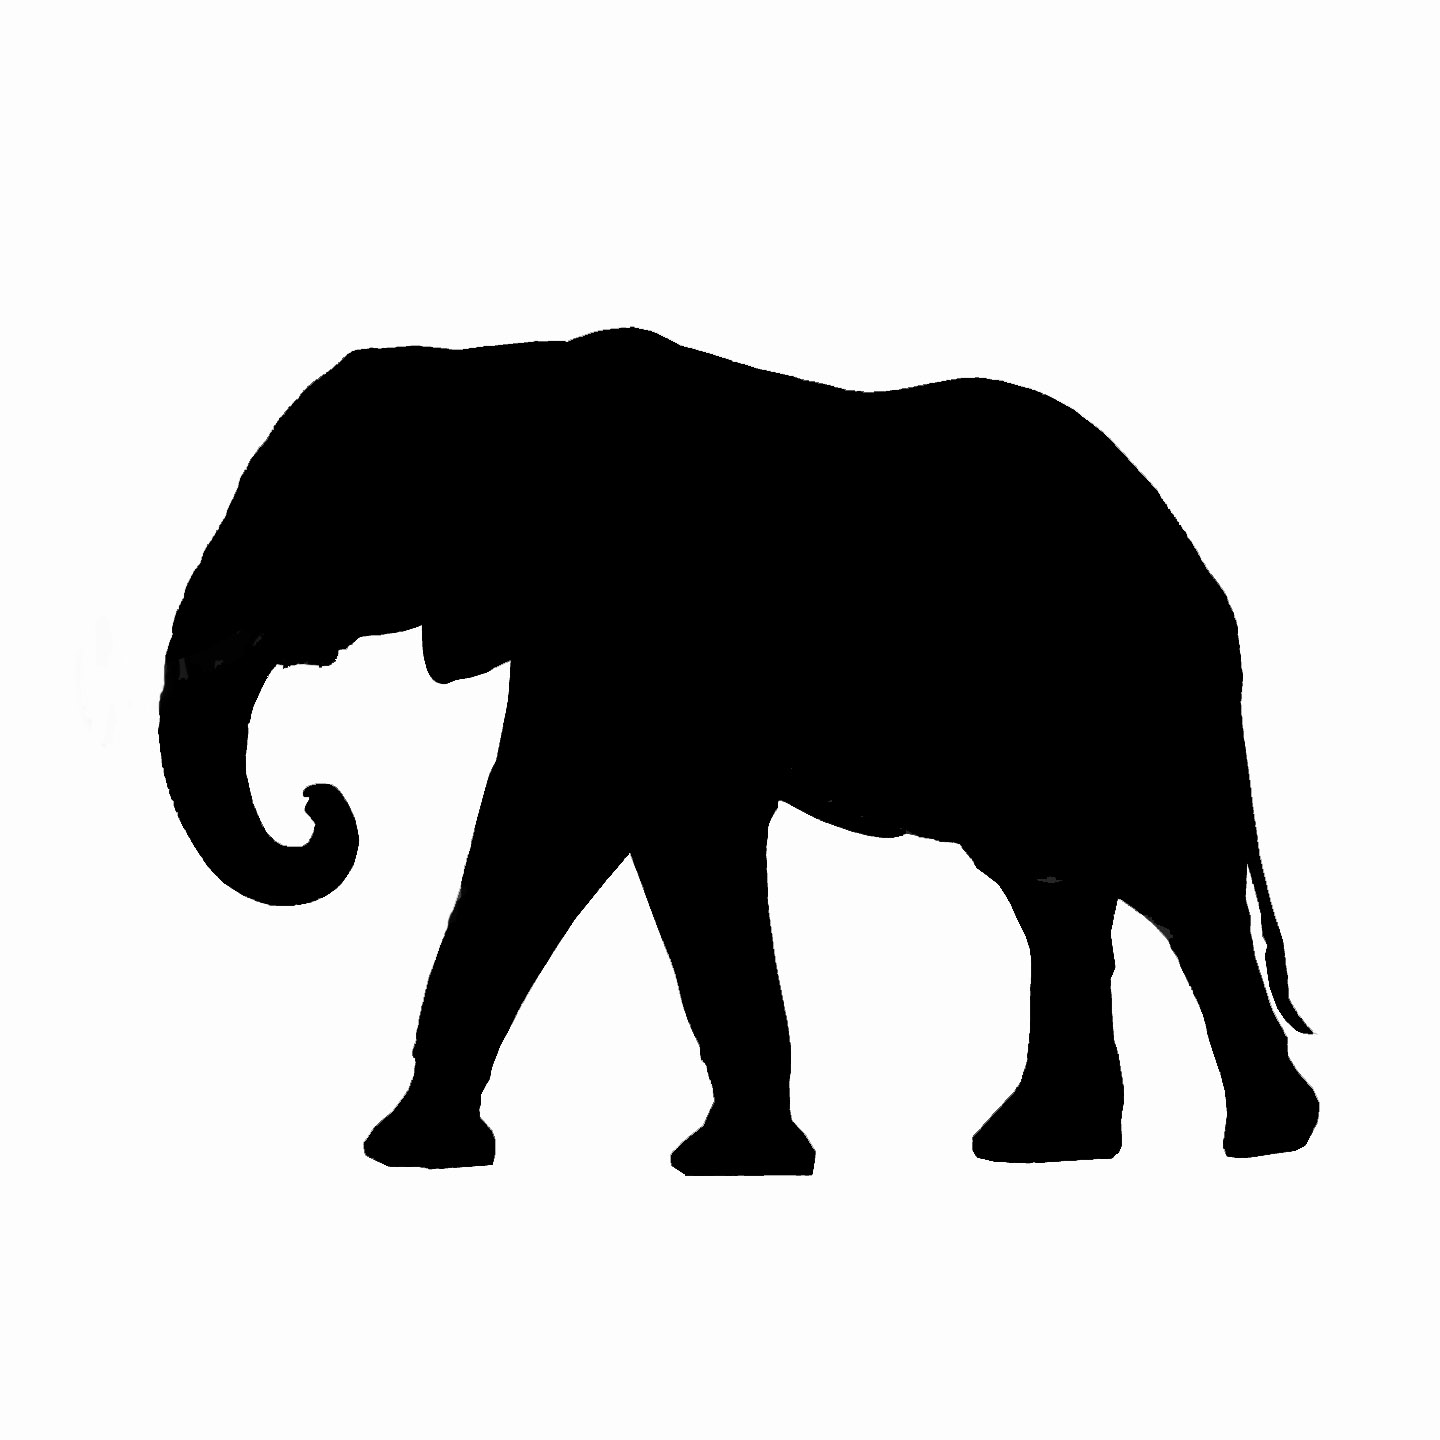 Elephant silhouette - photo#1